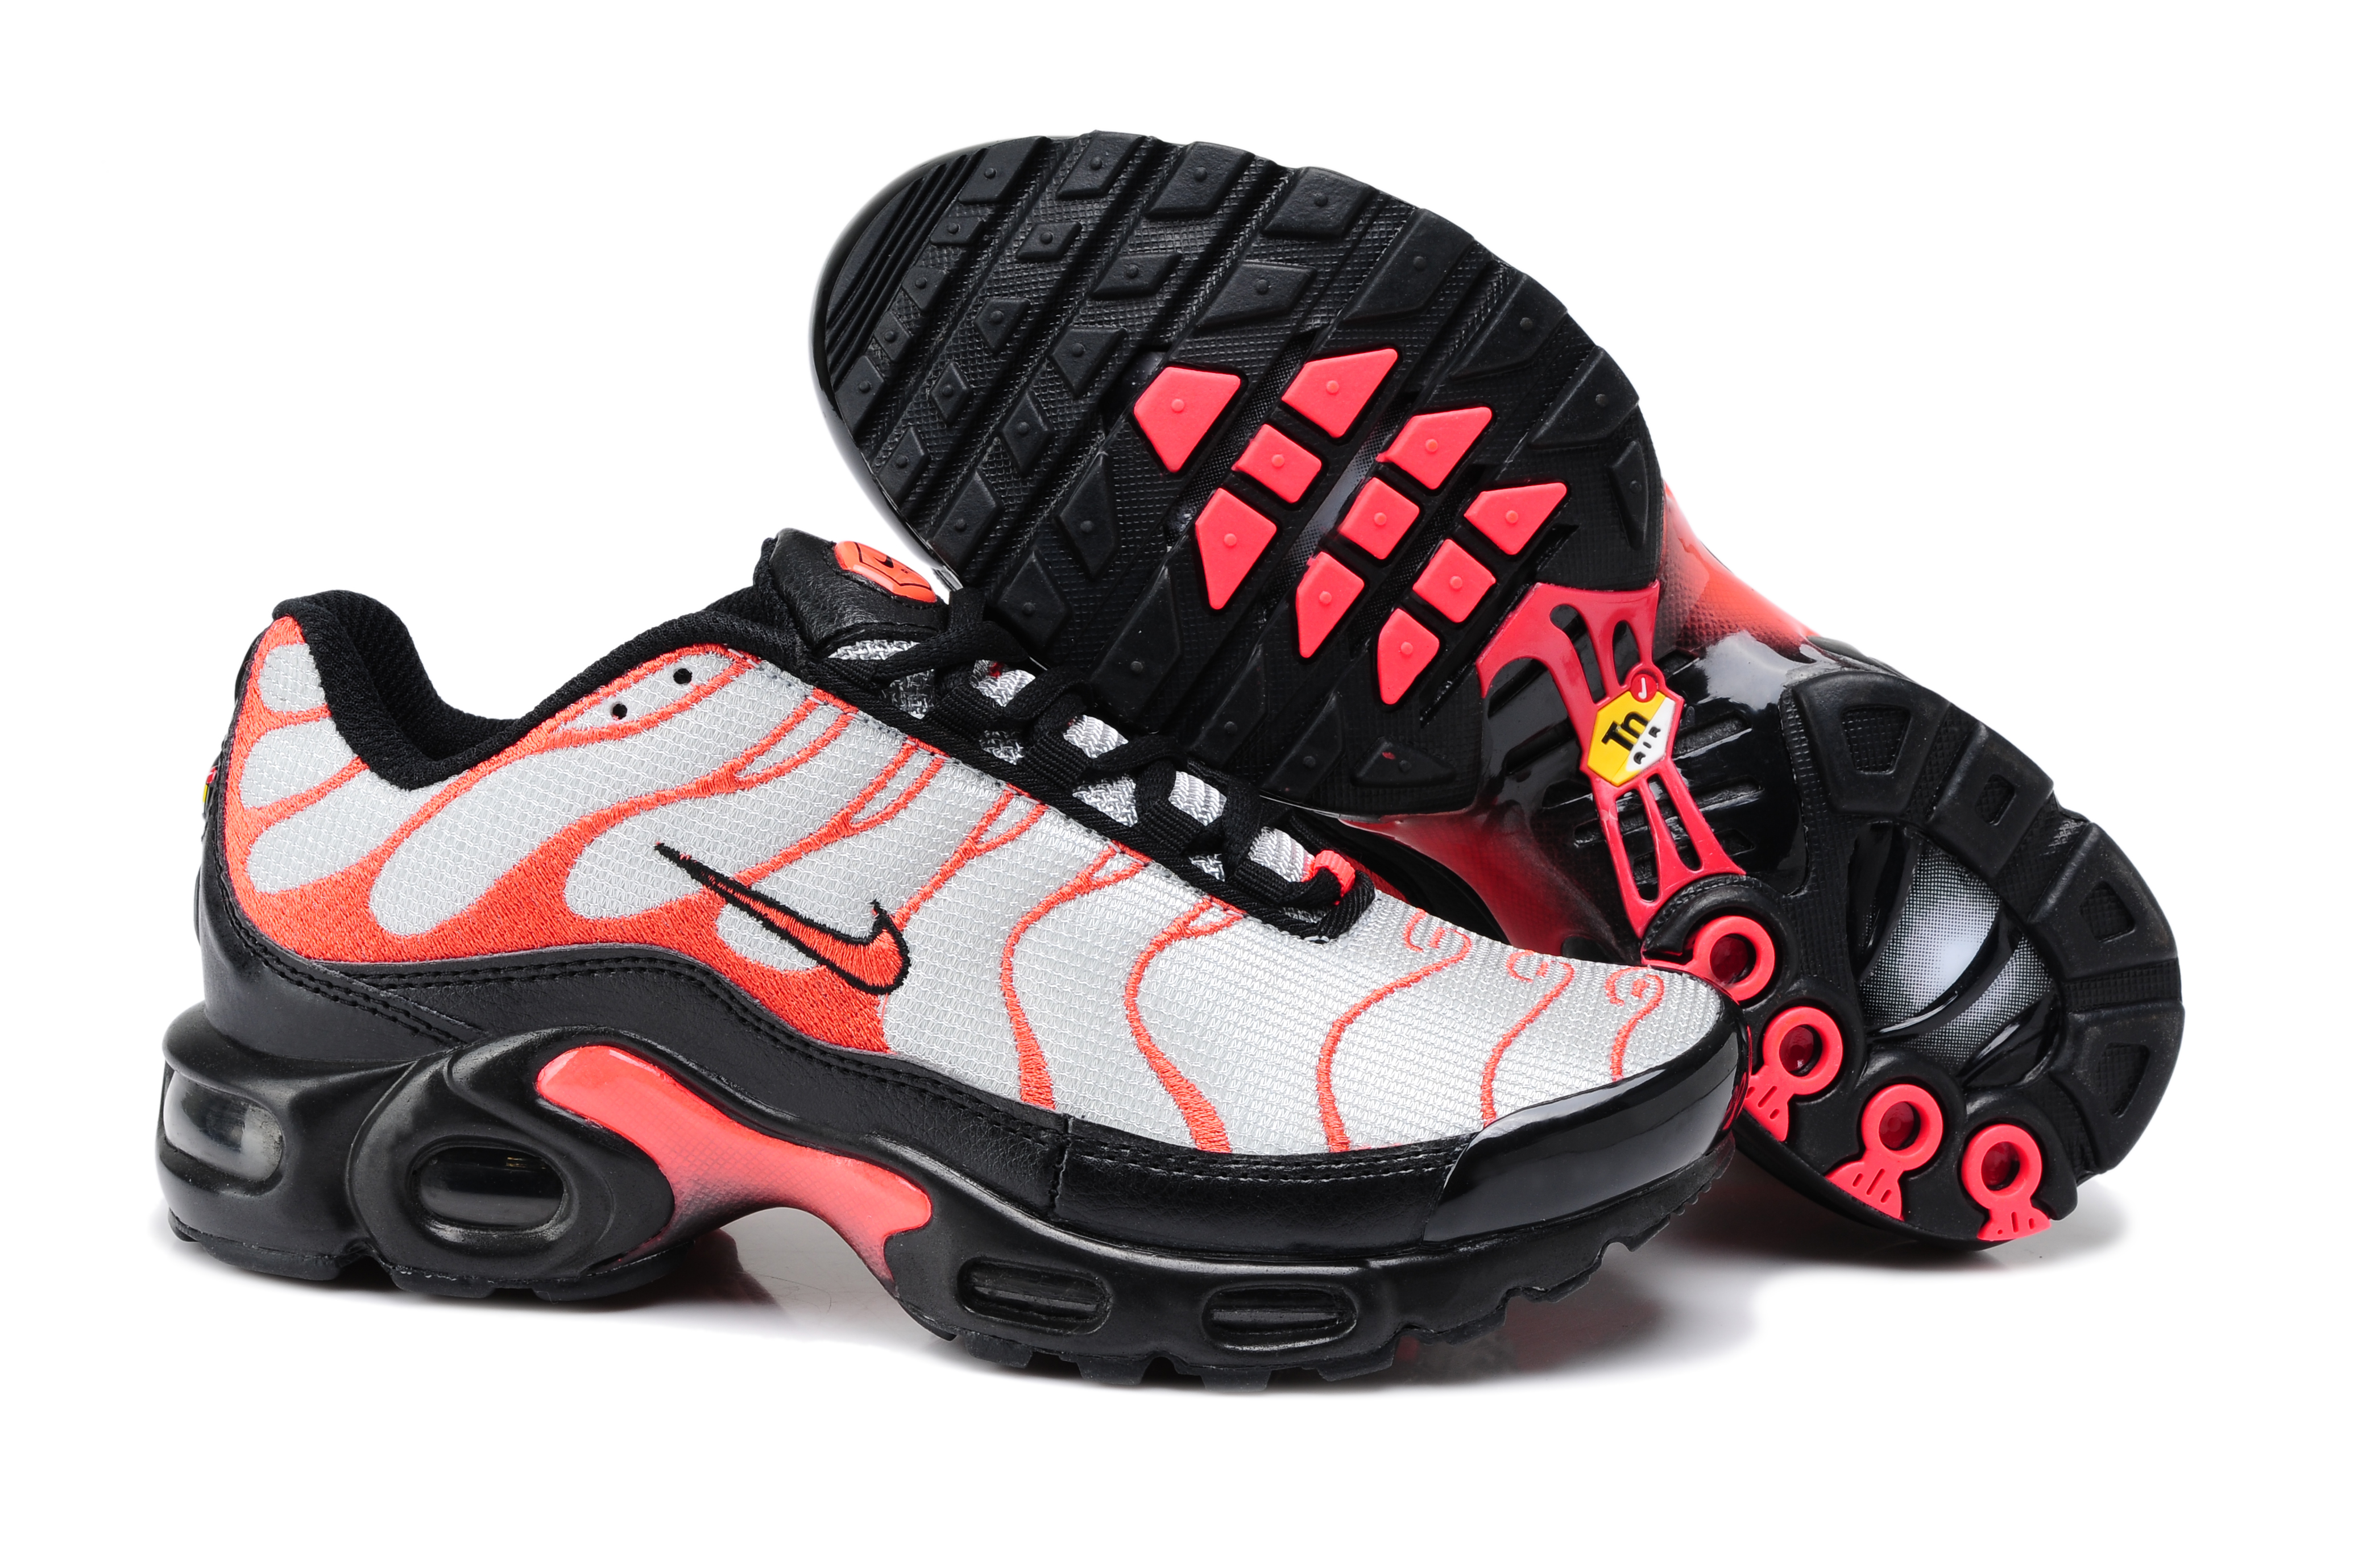 Homme Nike Air Max Cage : Chaussure Nike Femme Pas Cher